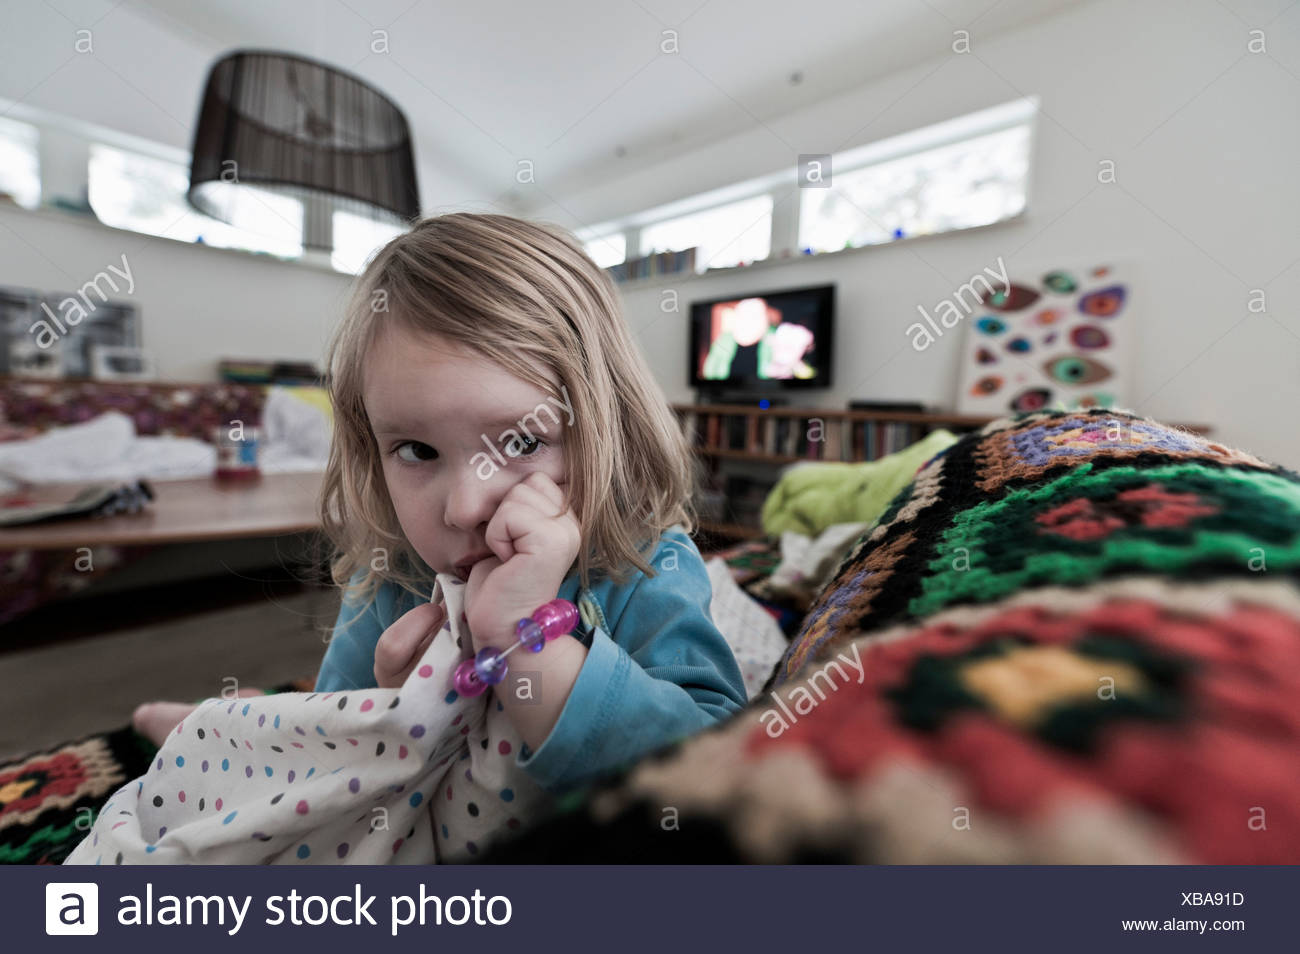 Blond haired girl sucking thumb while resting on sofa - Stock Image